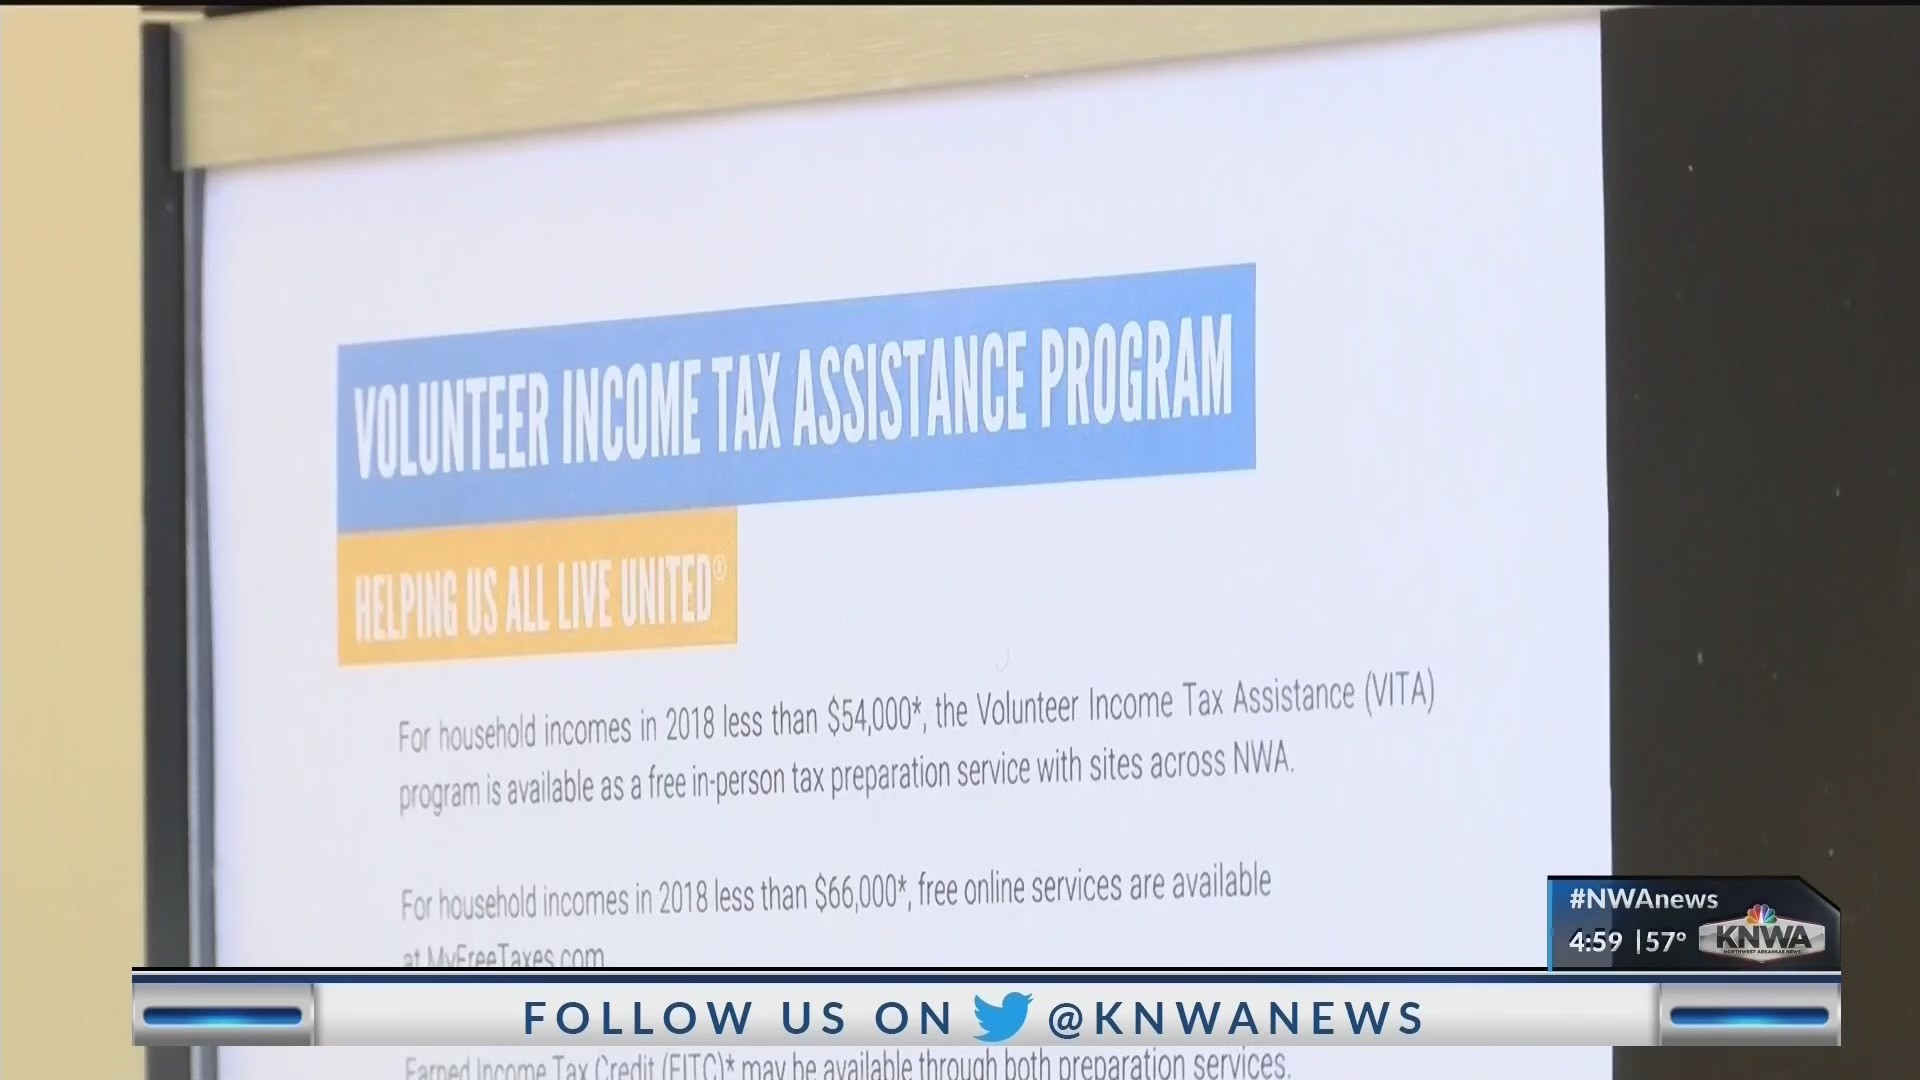 Taxpayers_Receive_Help_Amid_IRS_Filing_C_0_20190214012652